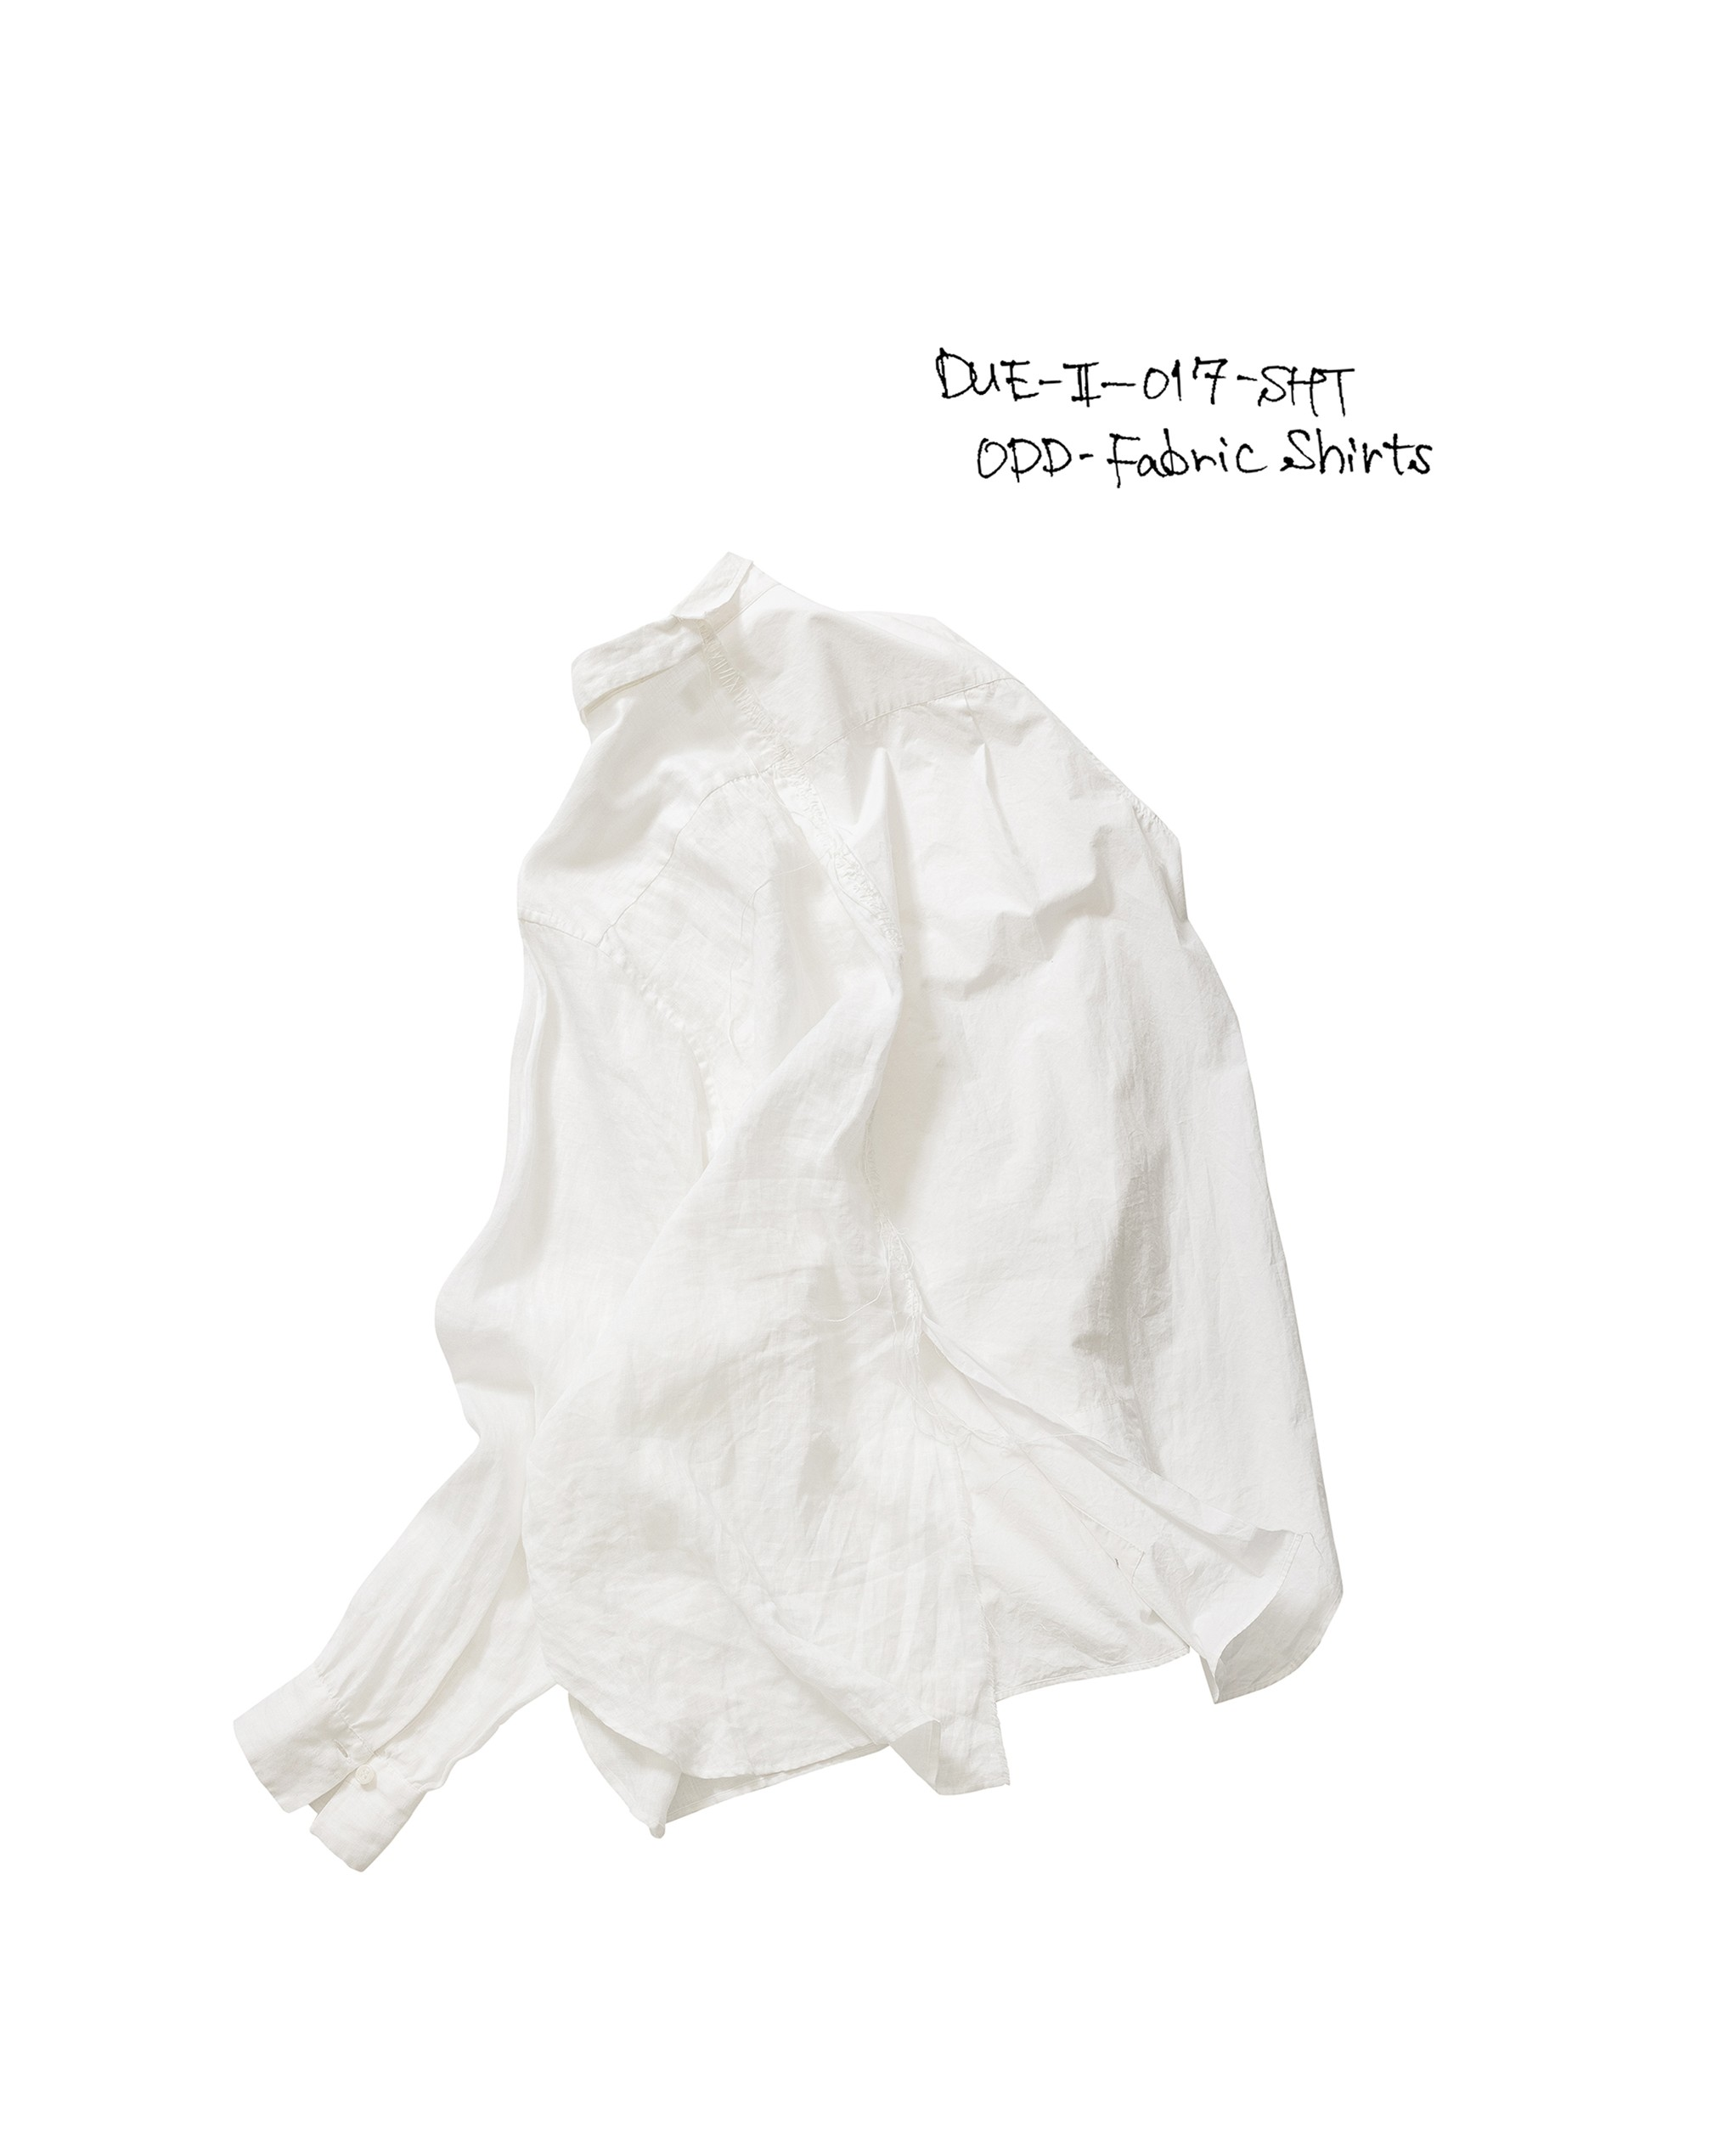 21SS DUE-Ⅱ-017-SHT-WHT ODD-FABRIC SHIRTS